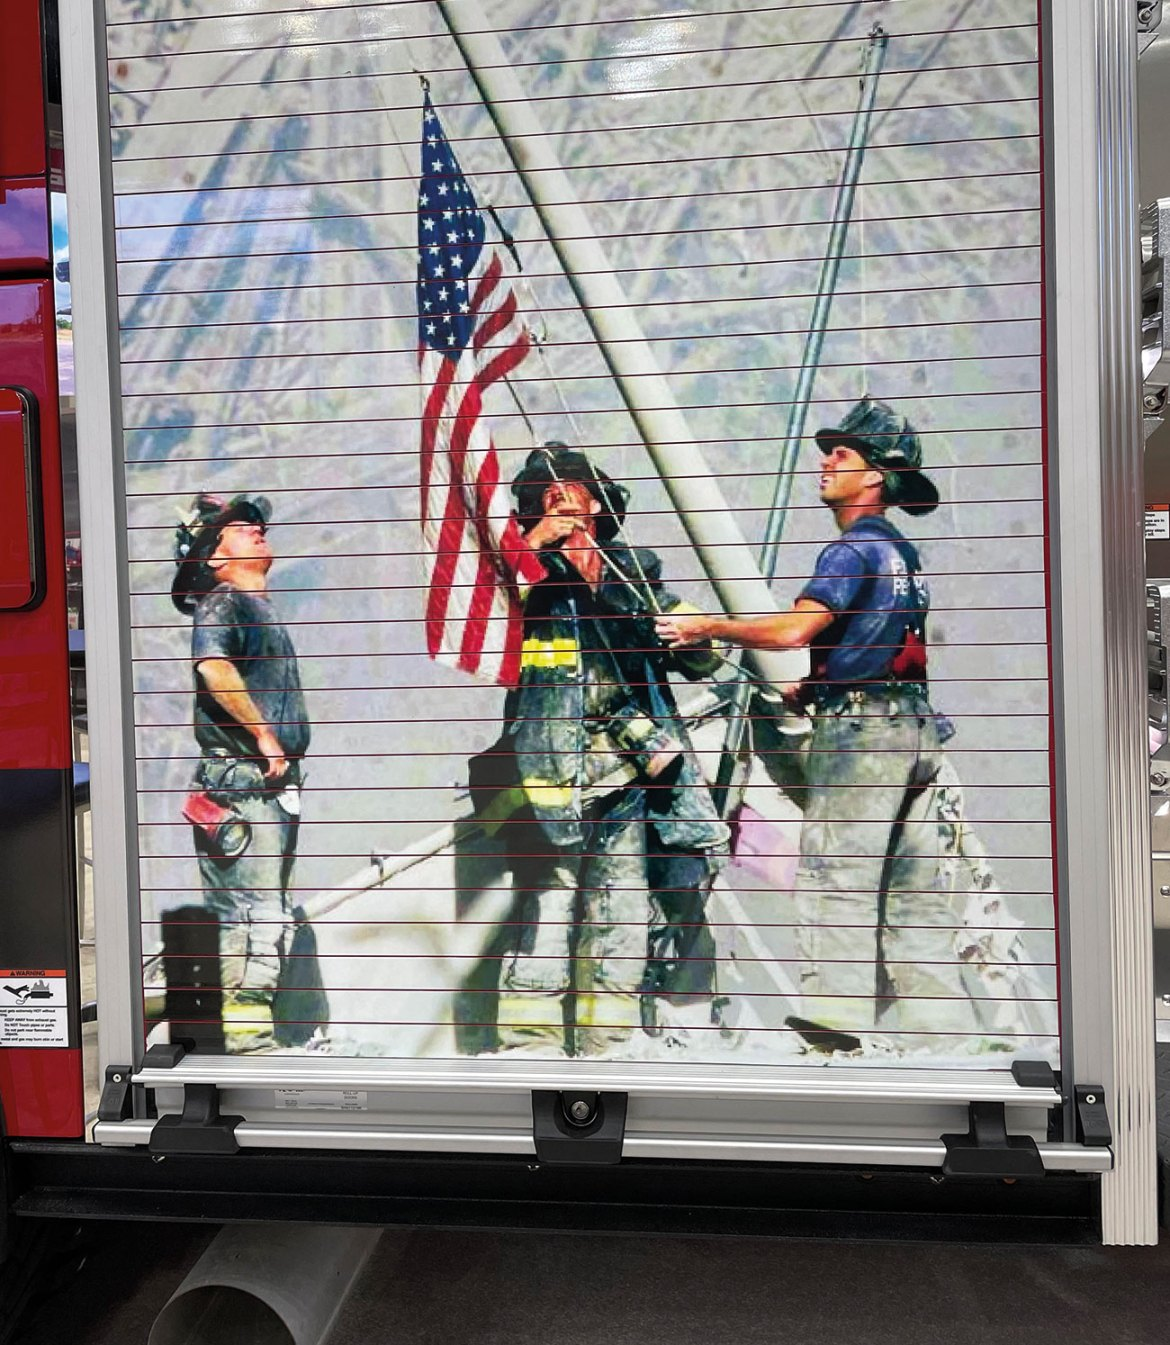 This 9/11 Memorial mural was spotted on the back of a fire apparatus at FDIC2021 in Indianapolis, Indiana. September 11, 2021 will be the 20th anniversary of the 9/11 terrorist attack.